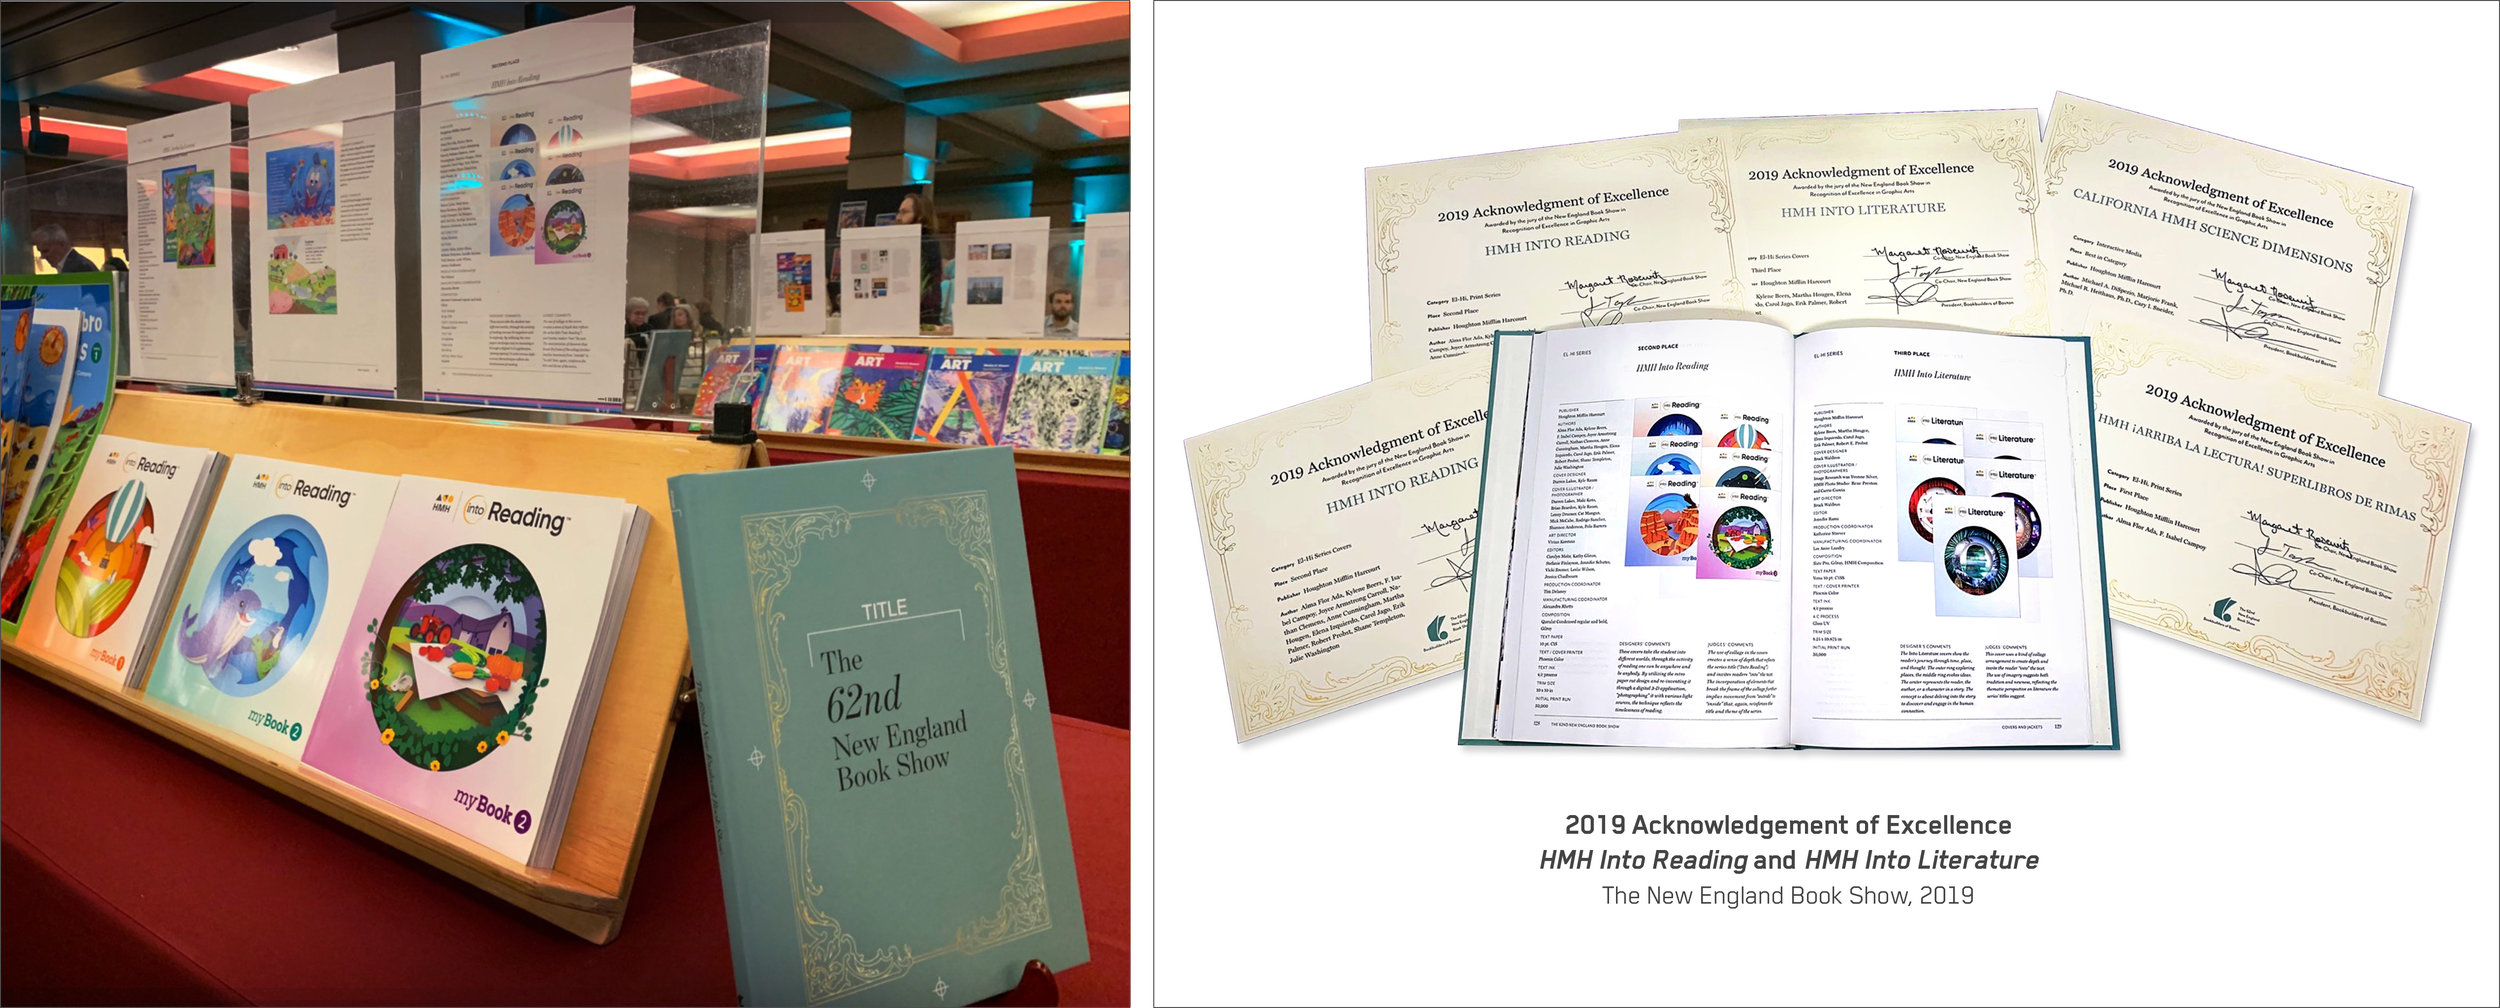 The New England Book Show, 2019 •  HMH Into Reading:  2nd Place – Cover Design & Illustration Award  •  HMH Into Literature:  3rd Place – cover Design Award